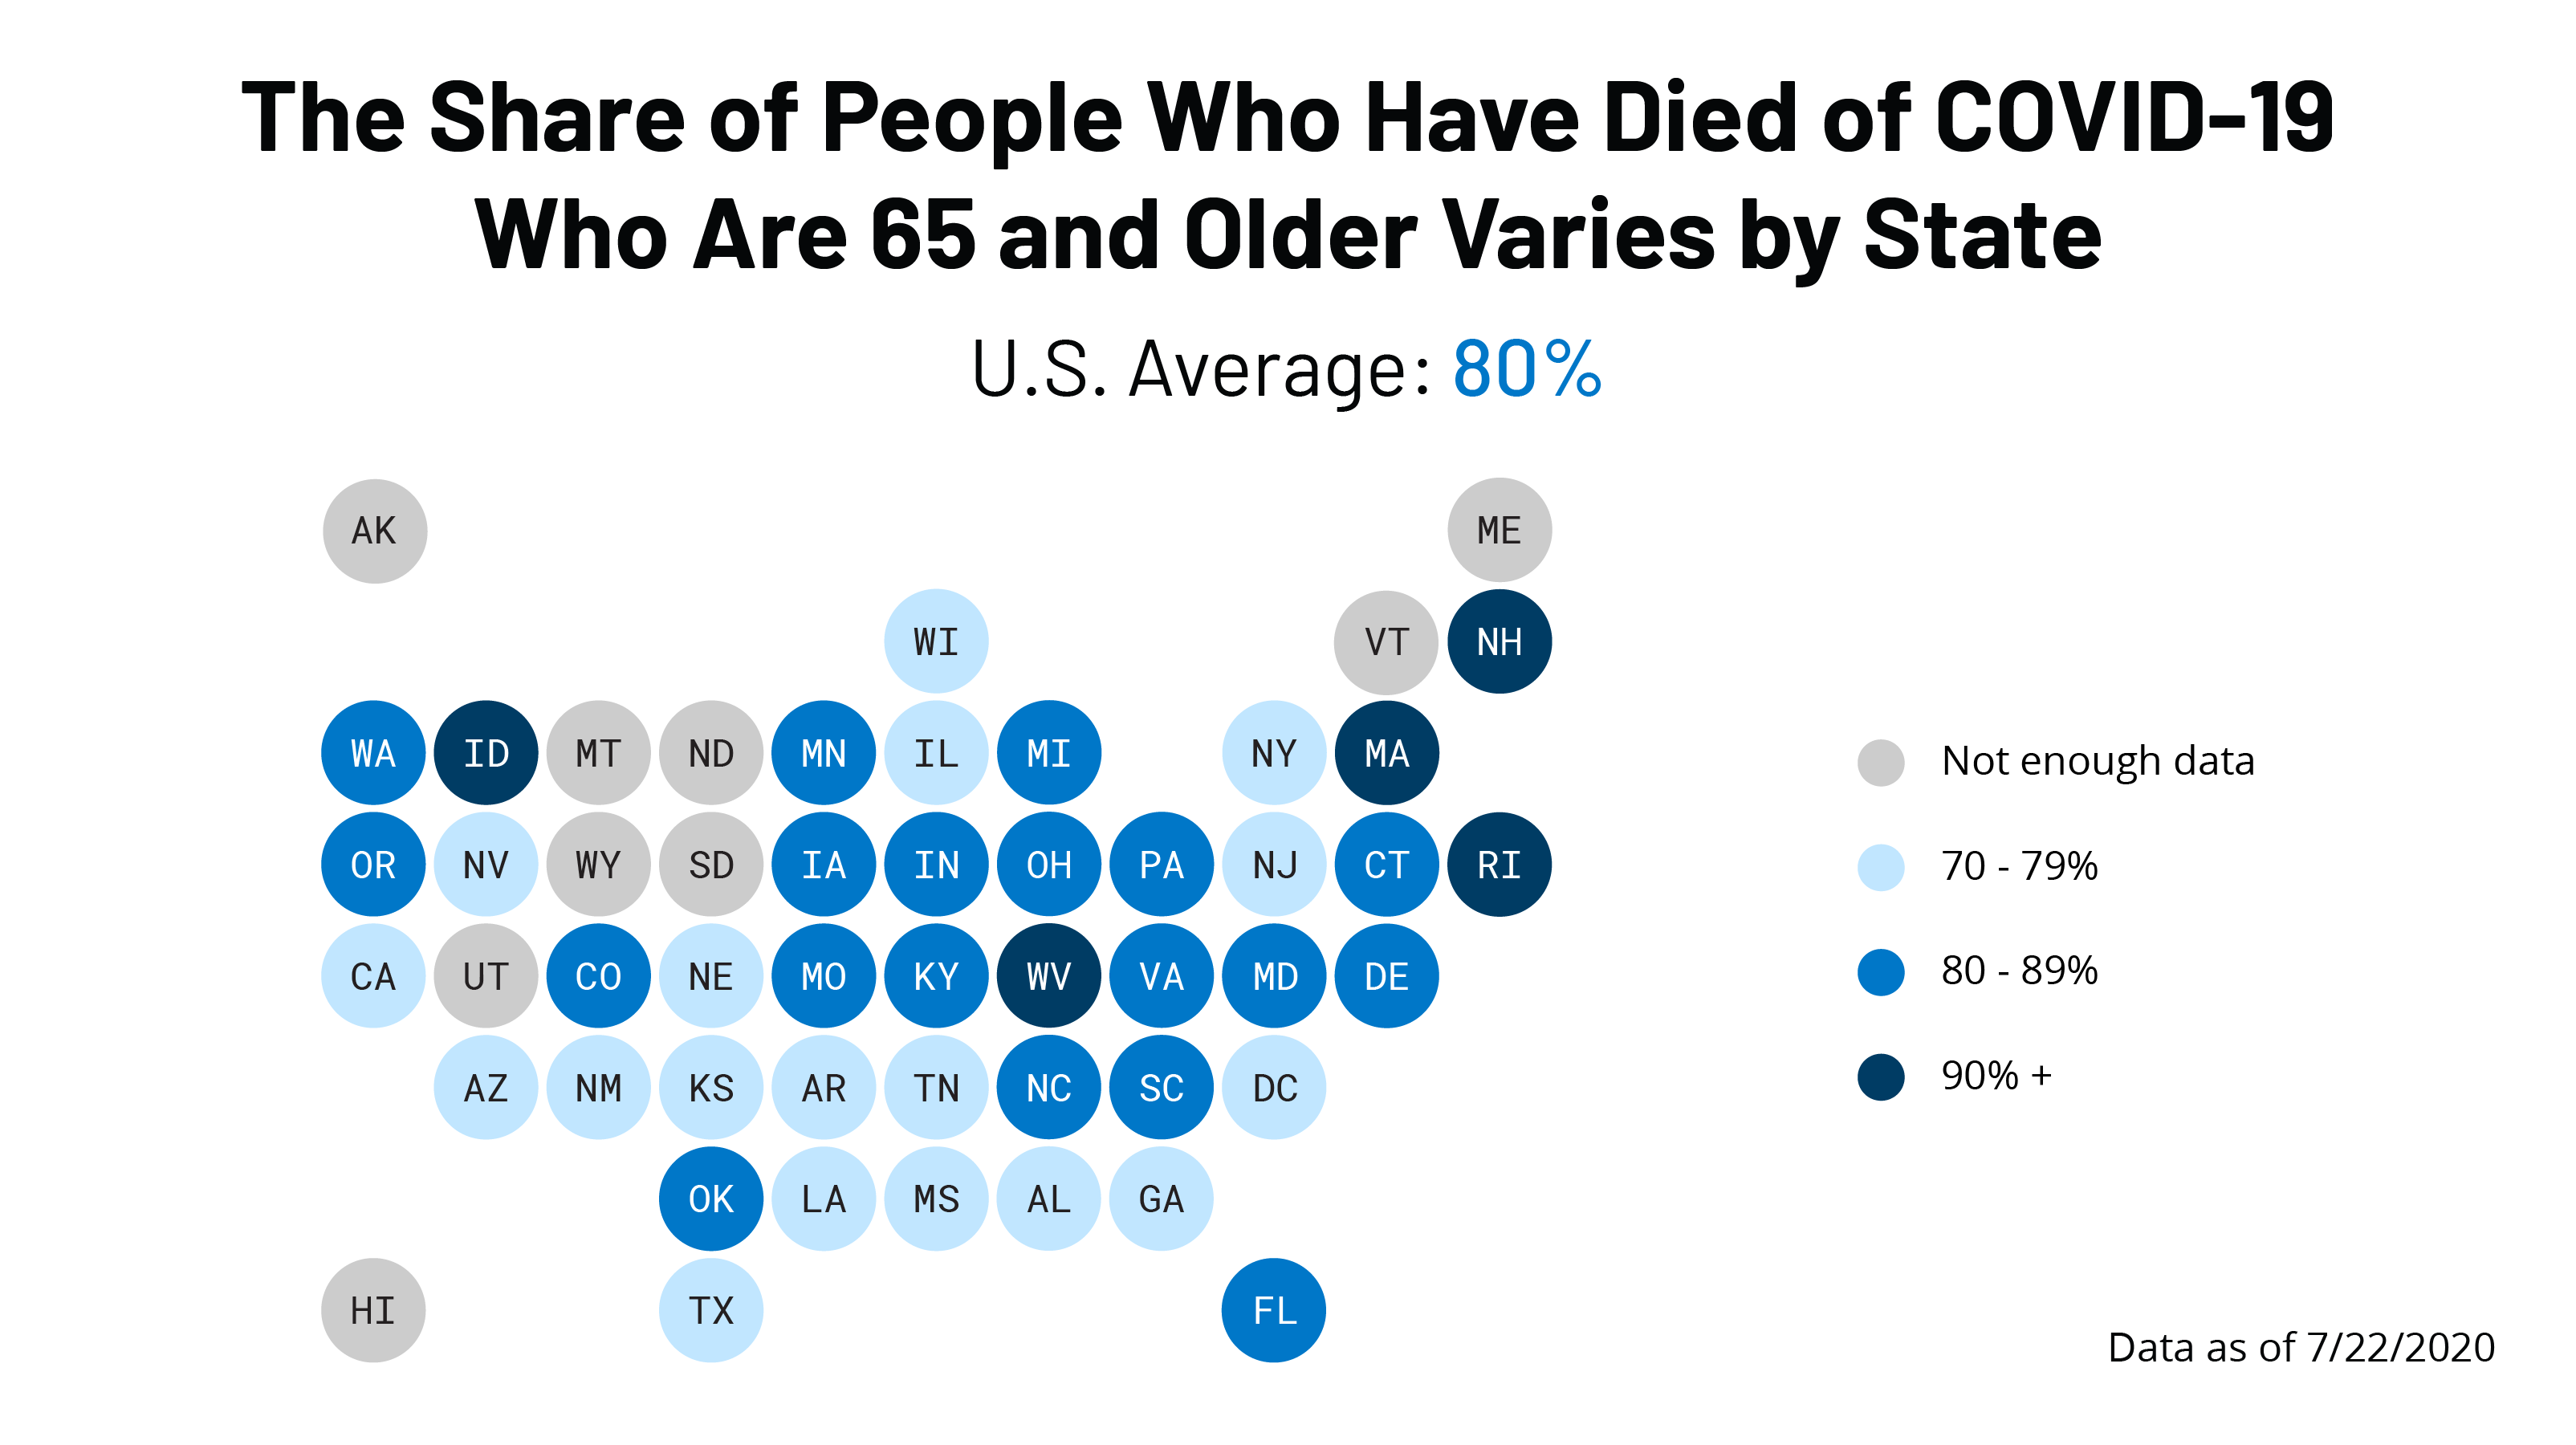 What Share of People Who Have Died of COVID-19 Are 65 and Older – and How Does It Vary By State?